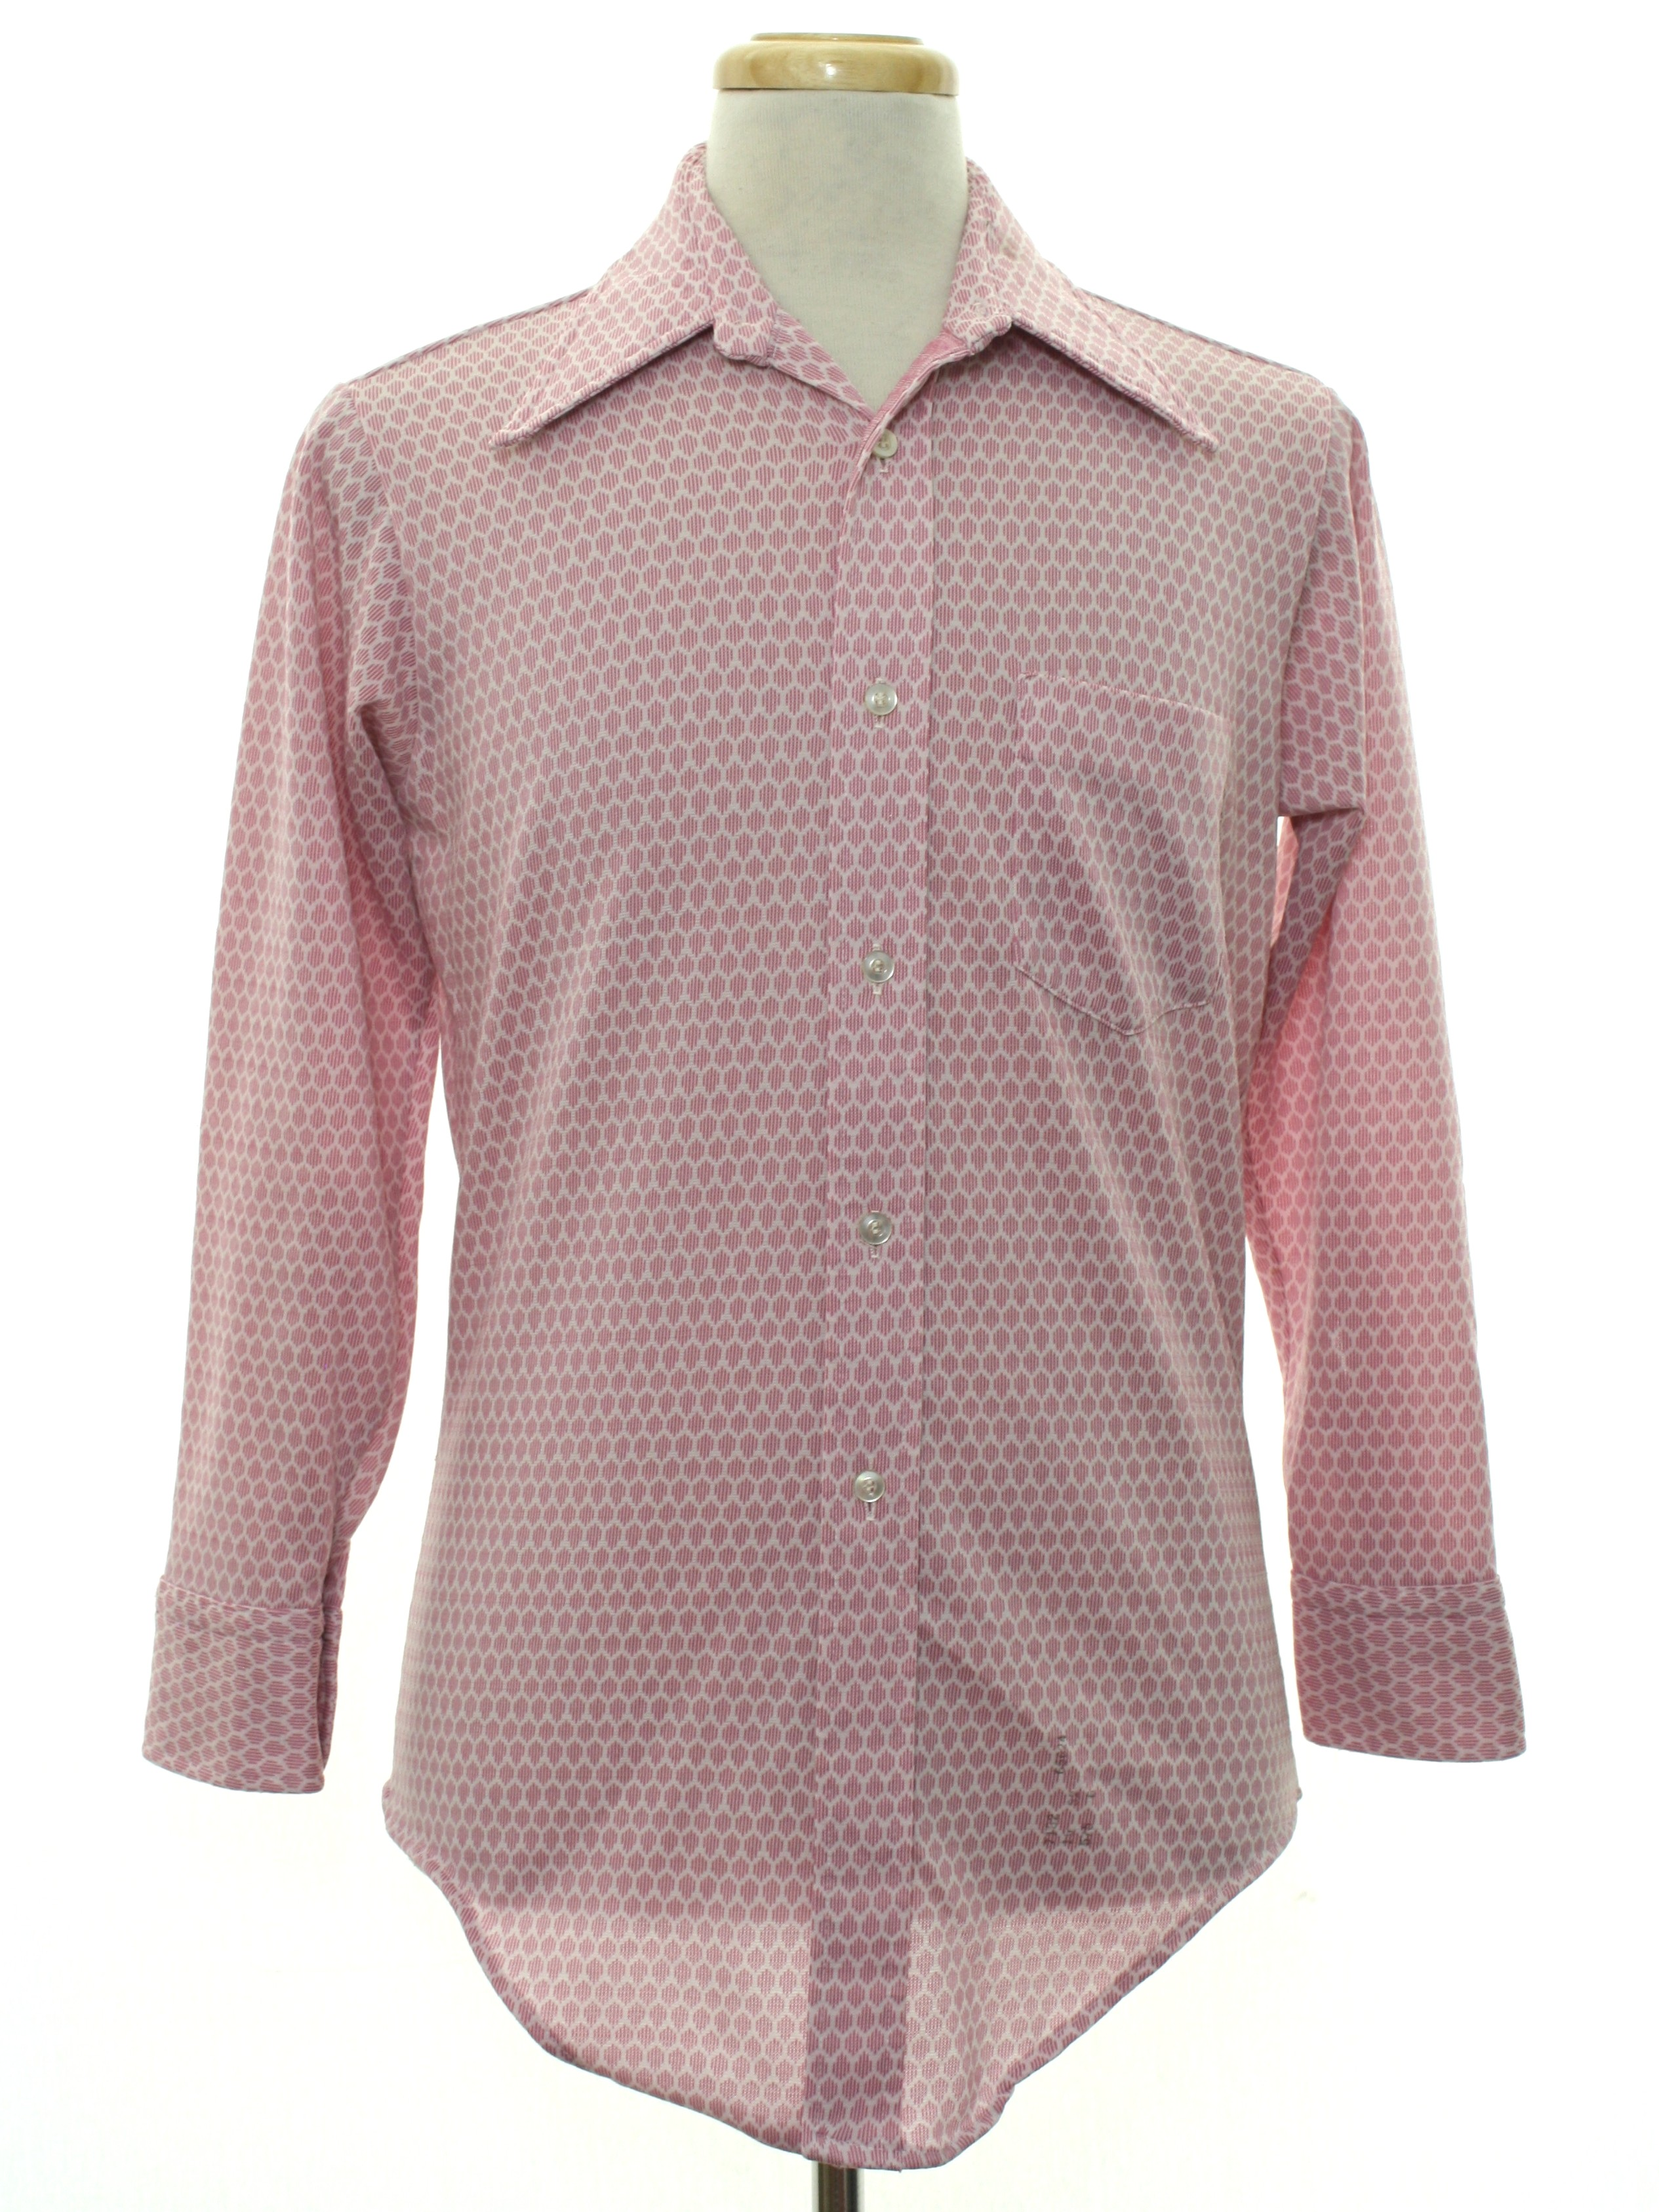 Retro 1970 39 s shirt kmart 70s kmart mens pink and for Kmart button up shirts